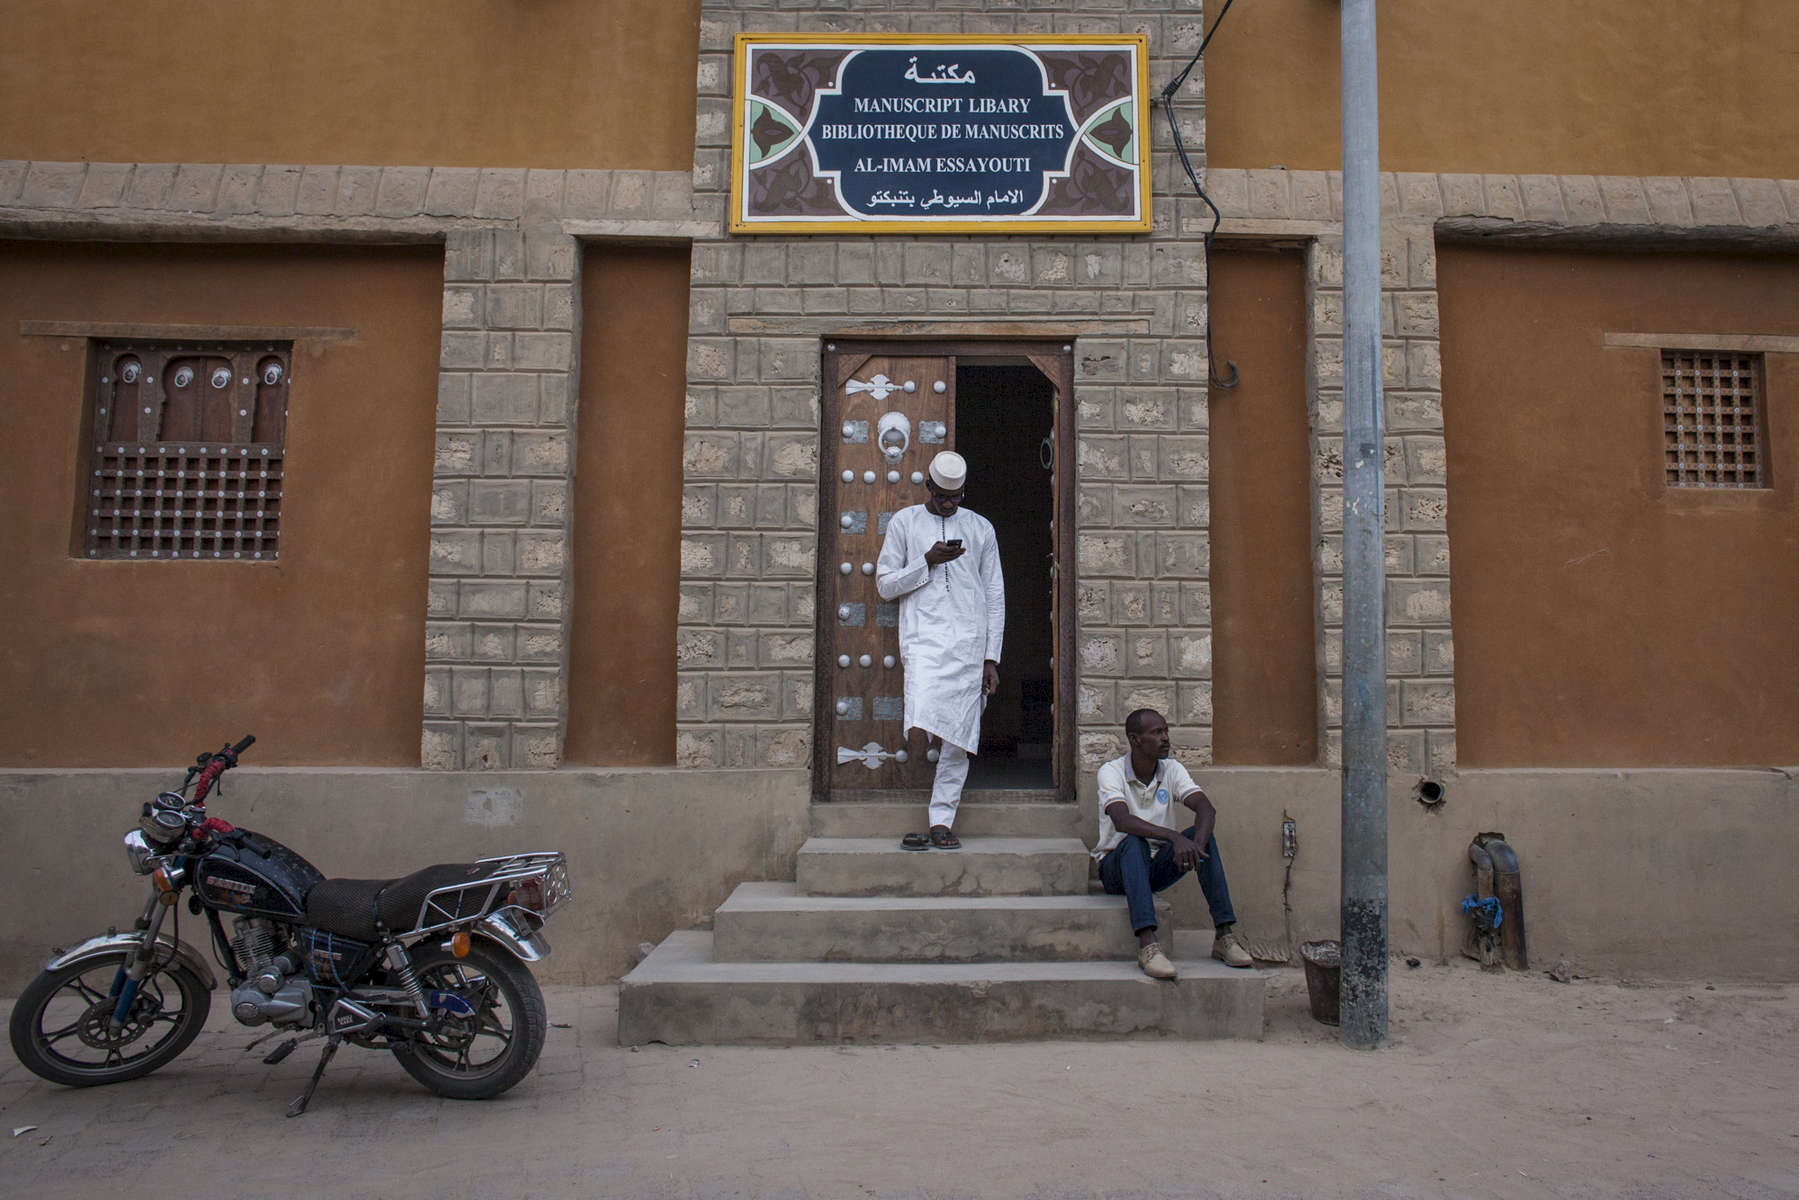 Men stand outside of the Manuscript Library in Timbuktu, Mali on Monday, January 9, 2017.